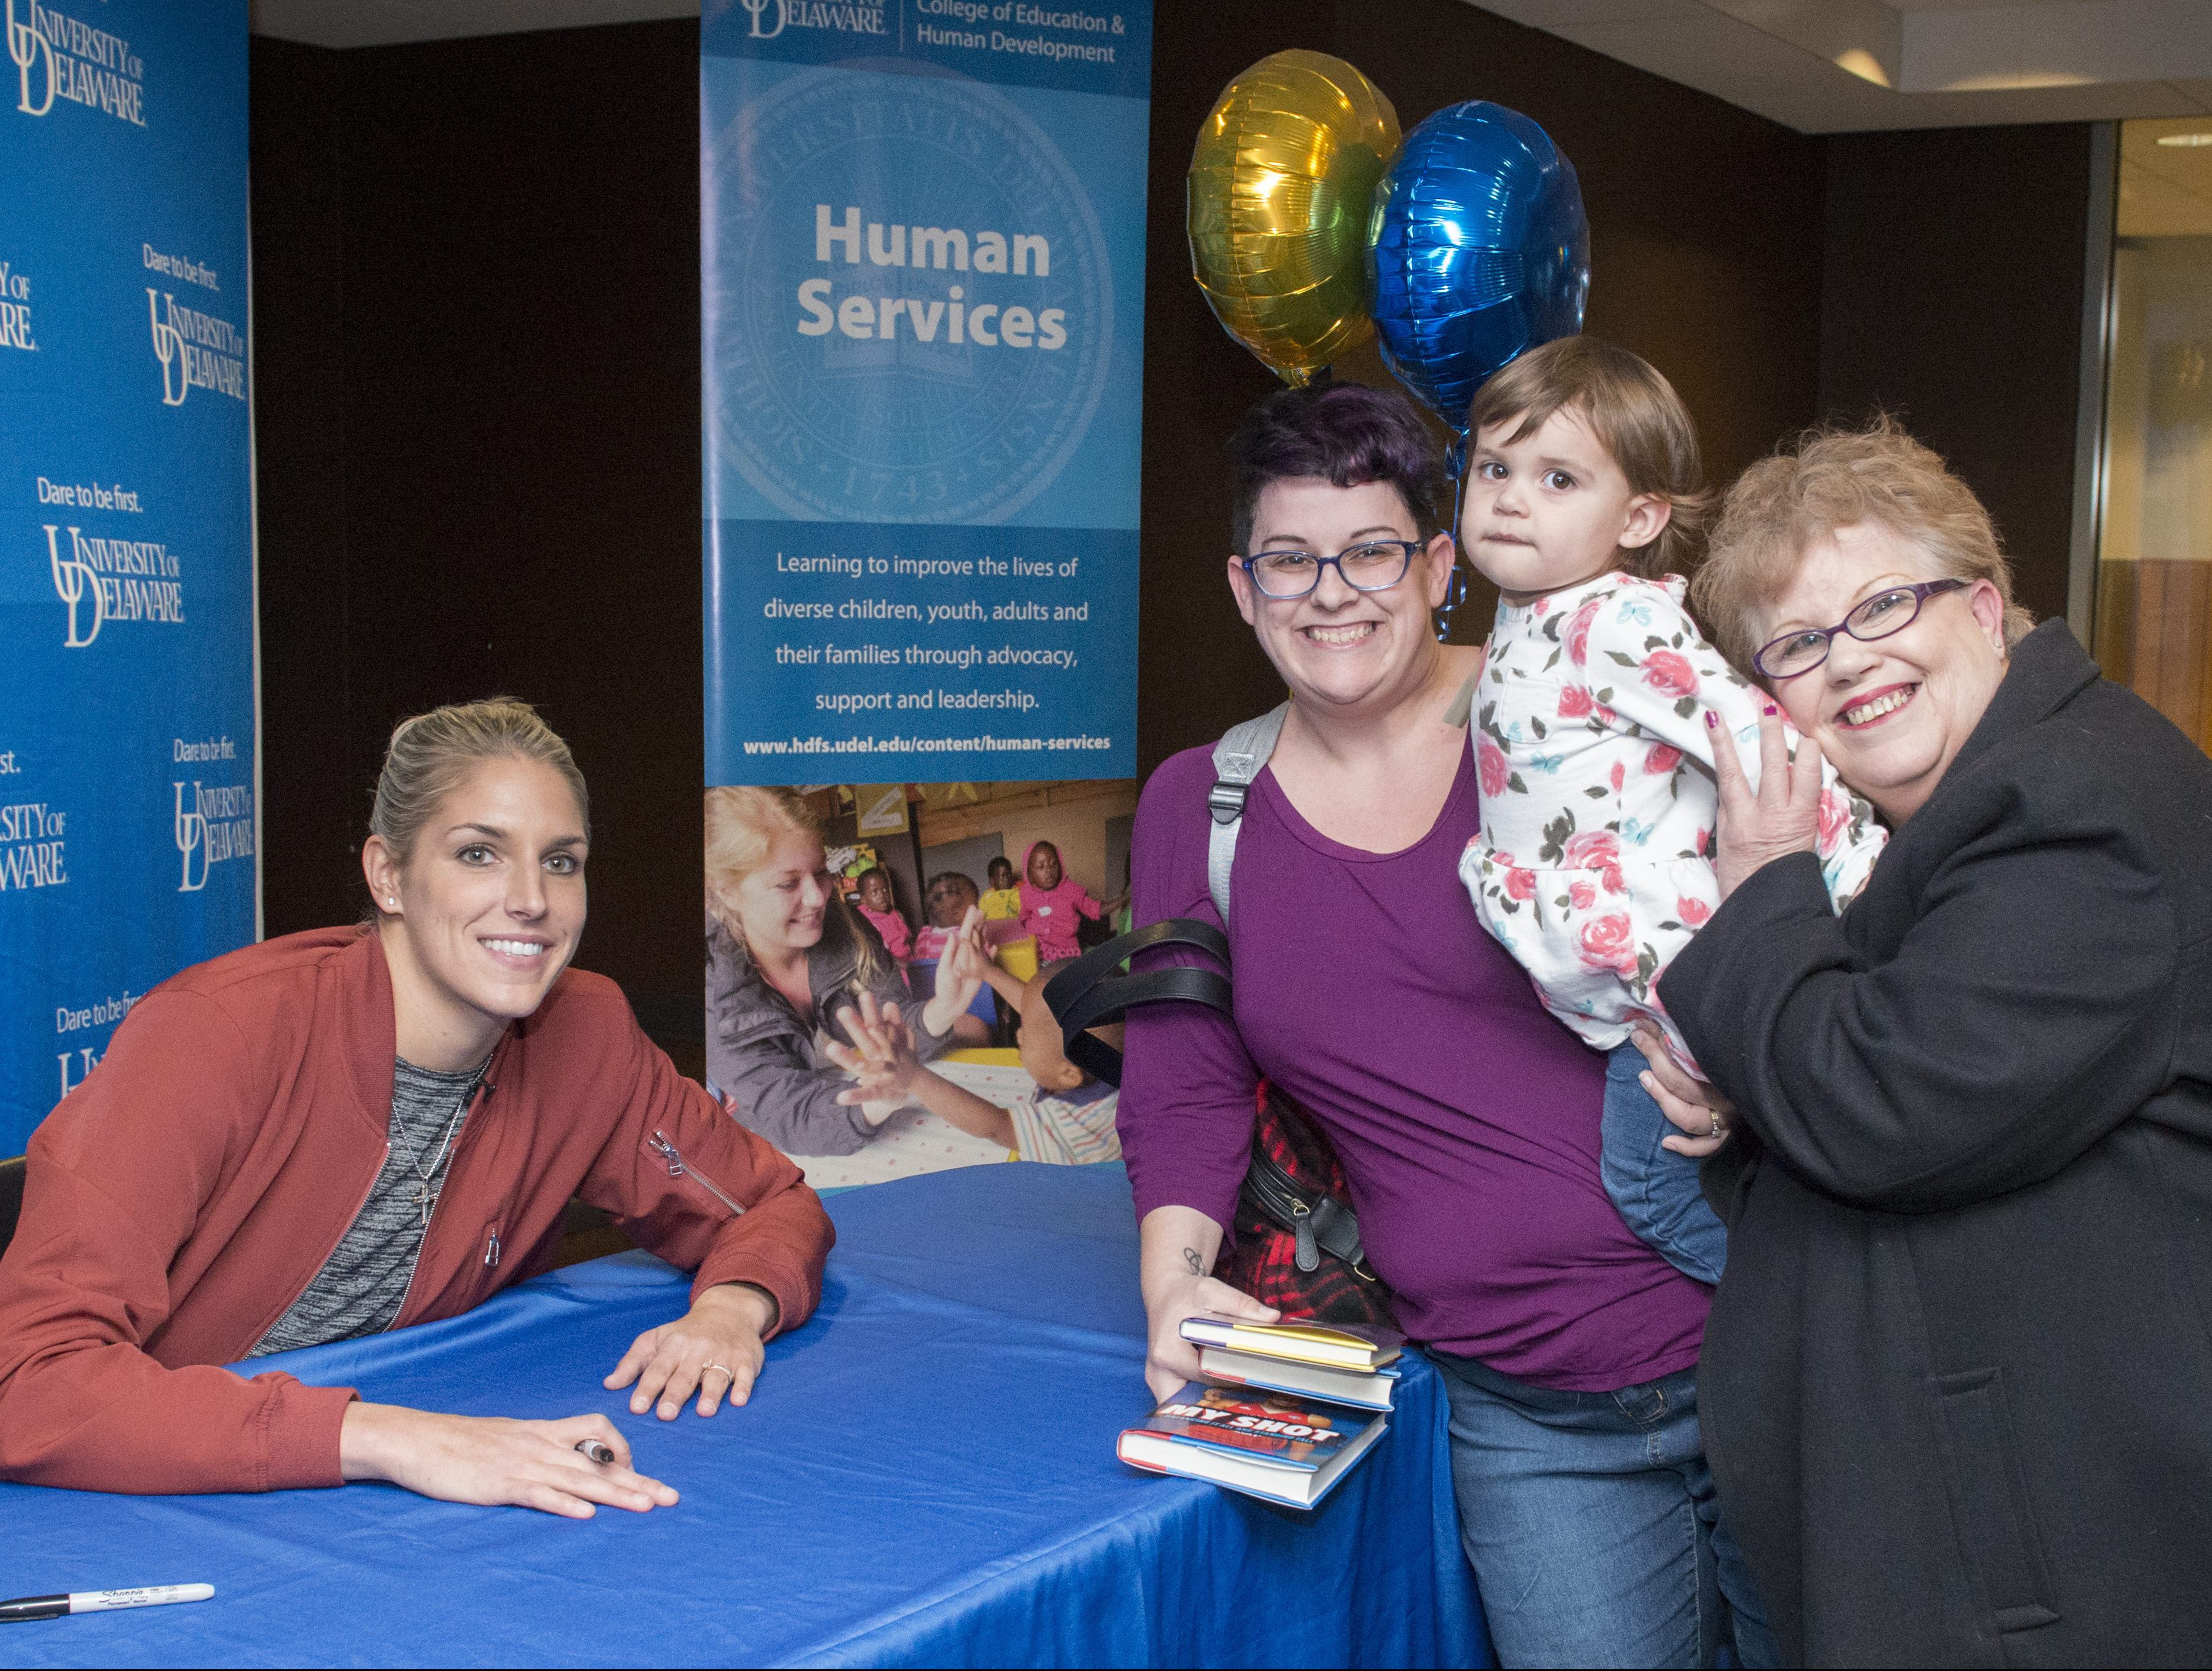 Generations of fans at Elena Delle Donne's book signing